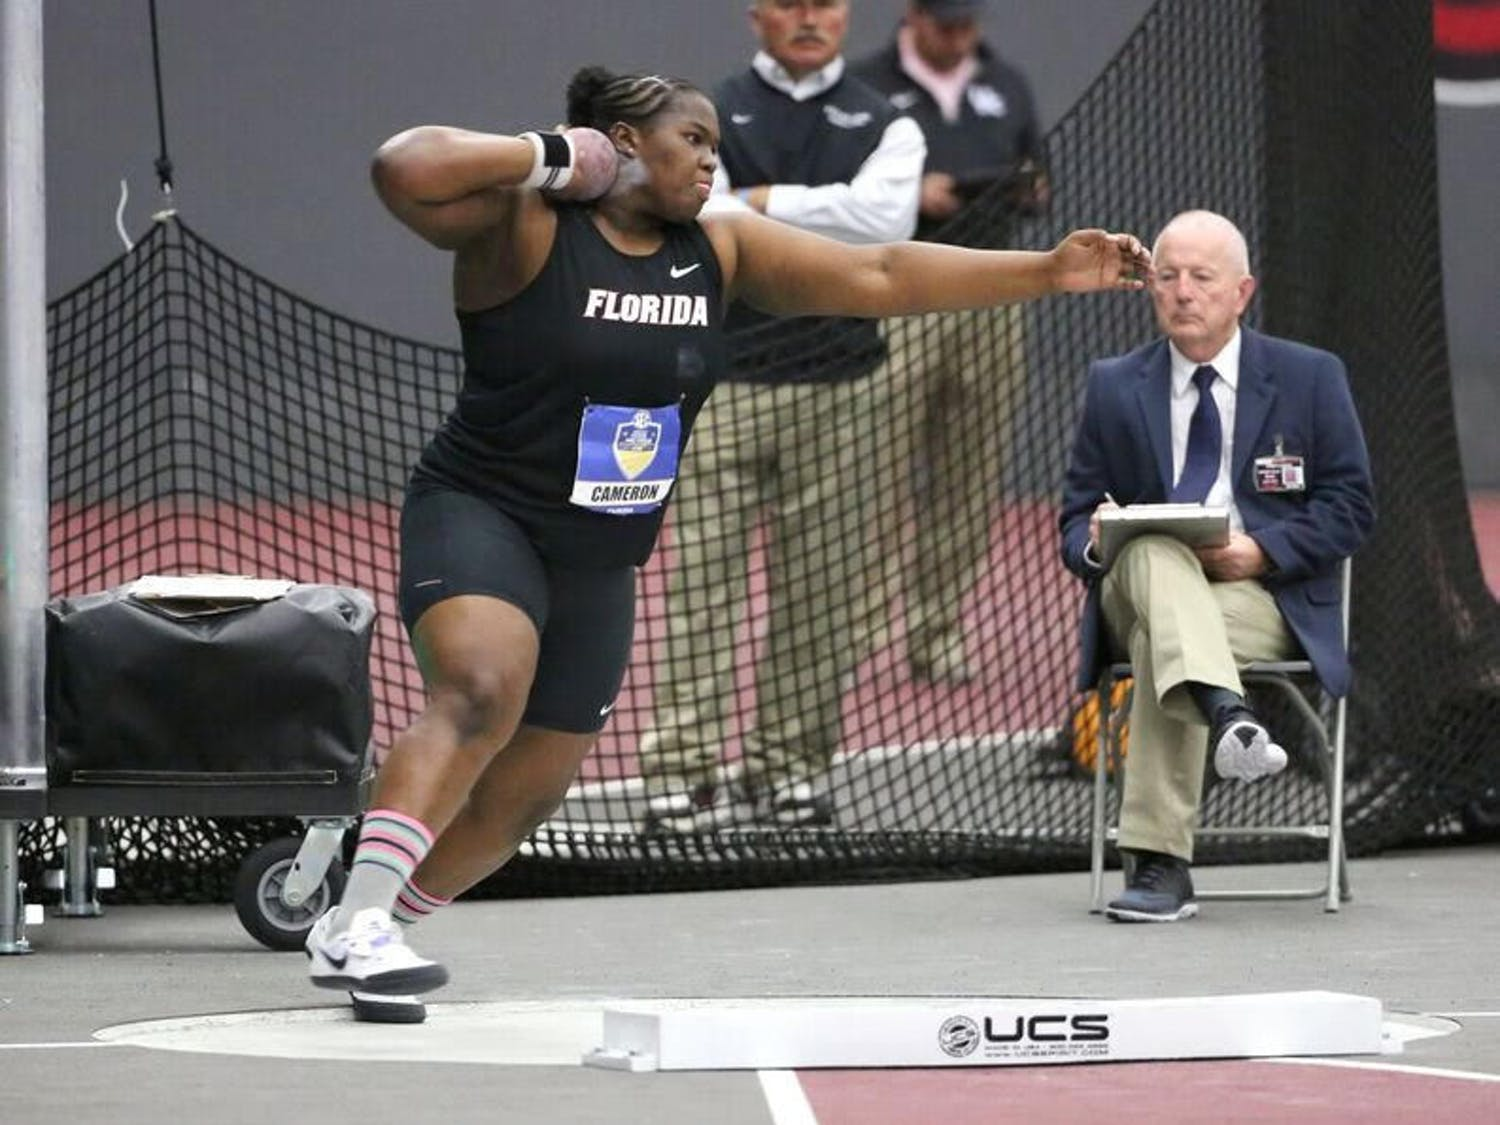 SeniorLloydricia Cameron competed in Day 1 of the2018 Indoor SEC Championships on Saturday in College Station, Texas.